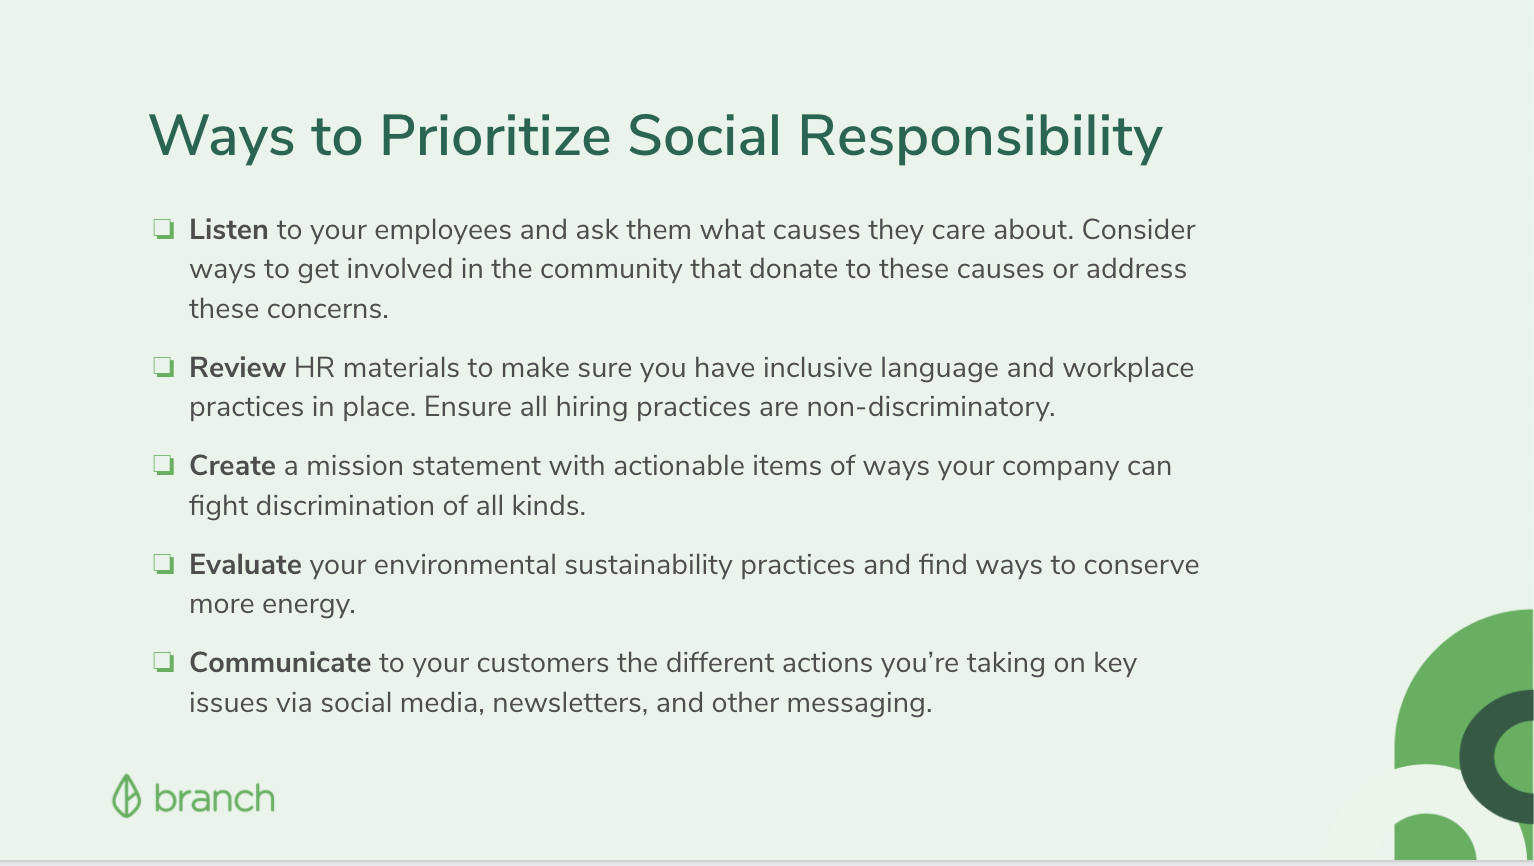 Ways to prioritize social responsibility at your company